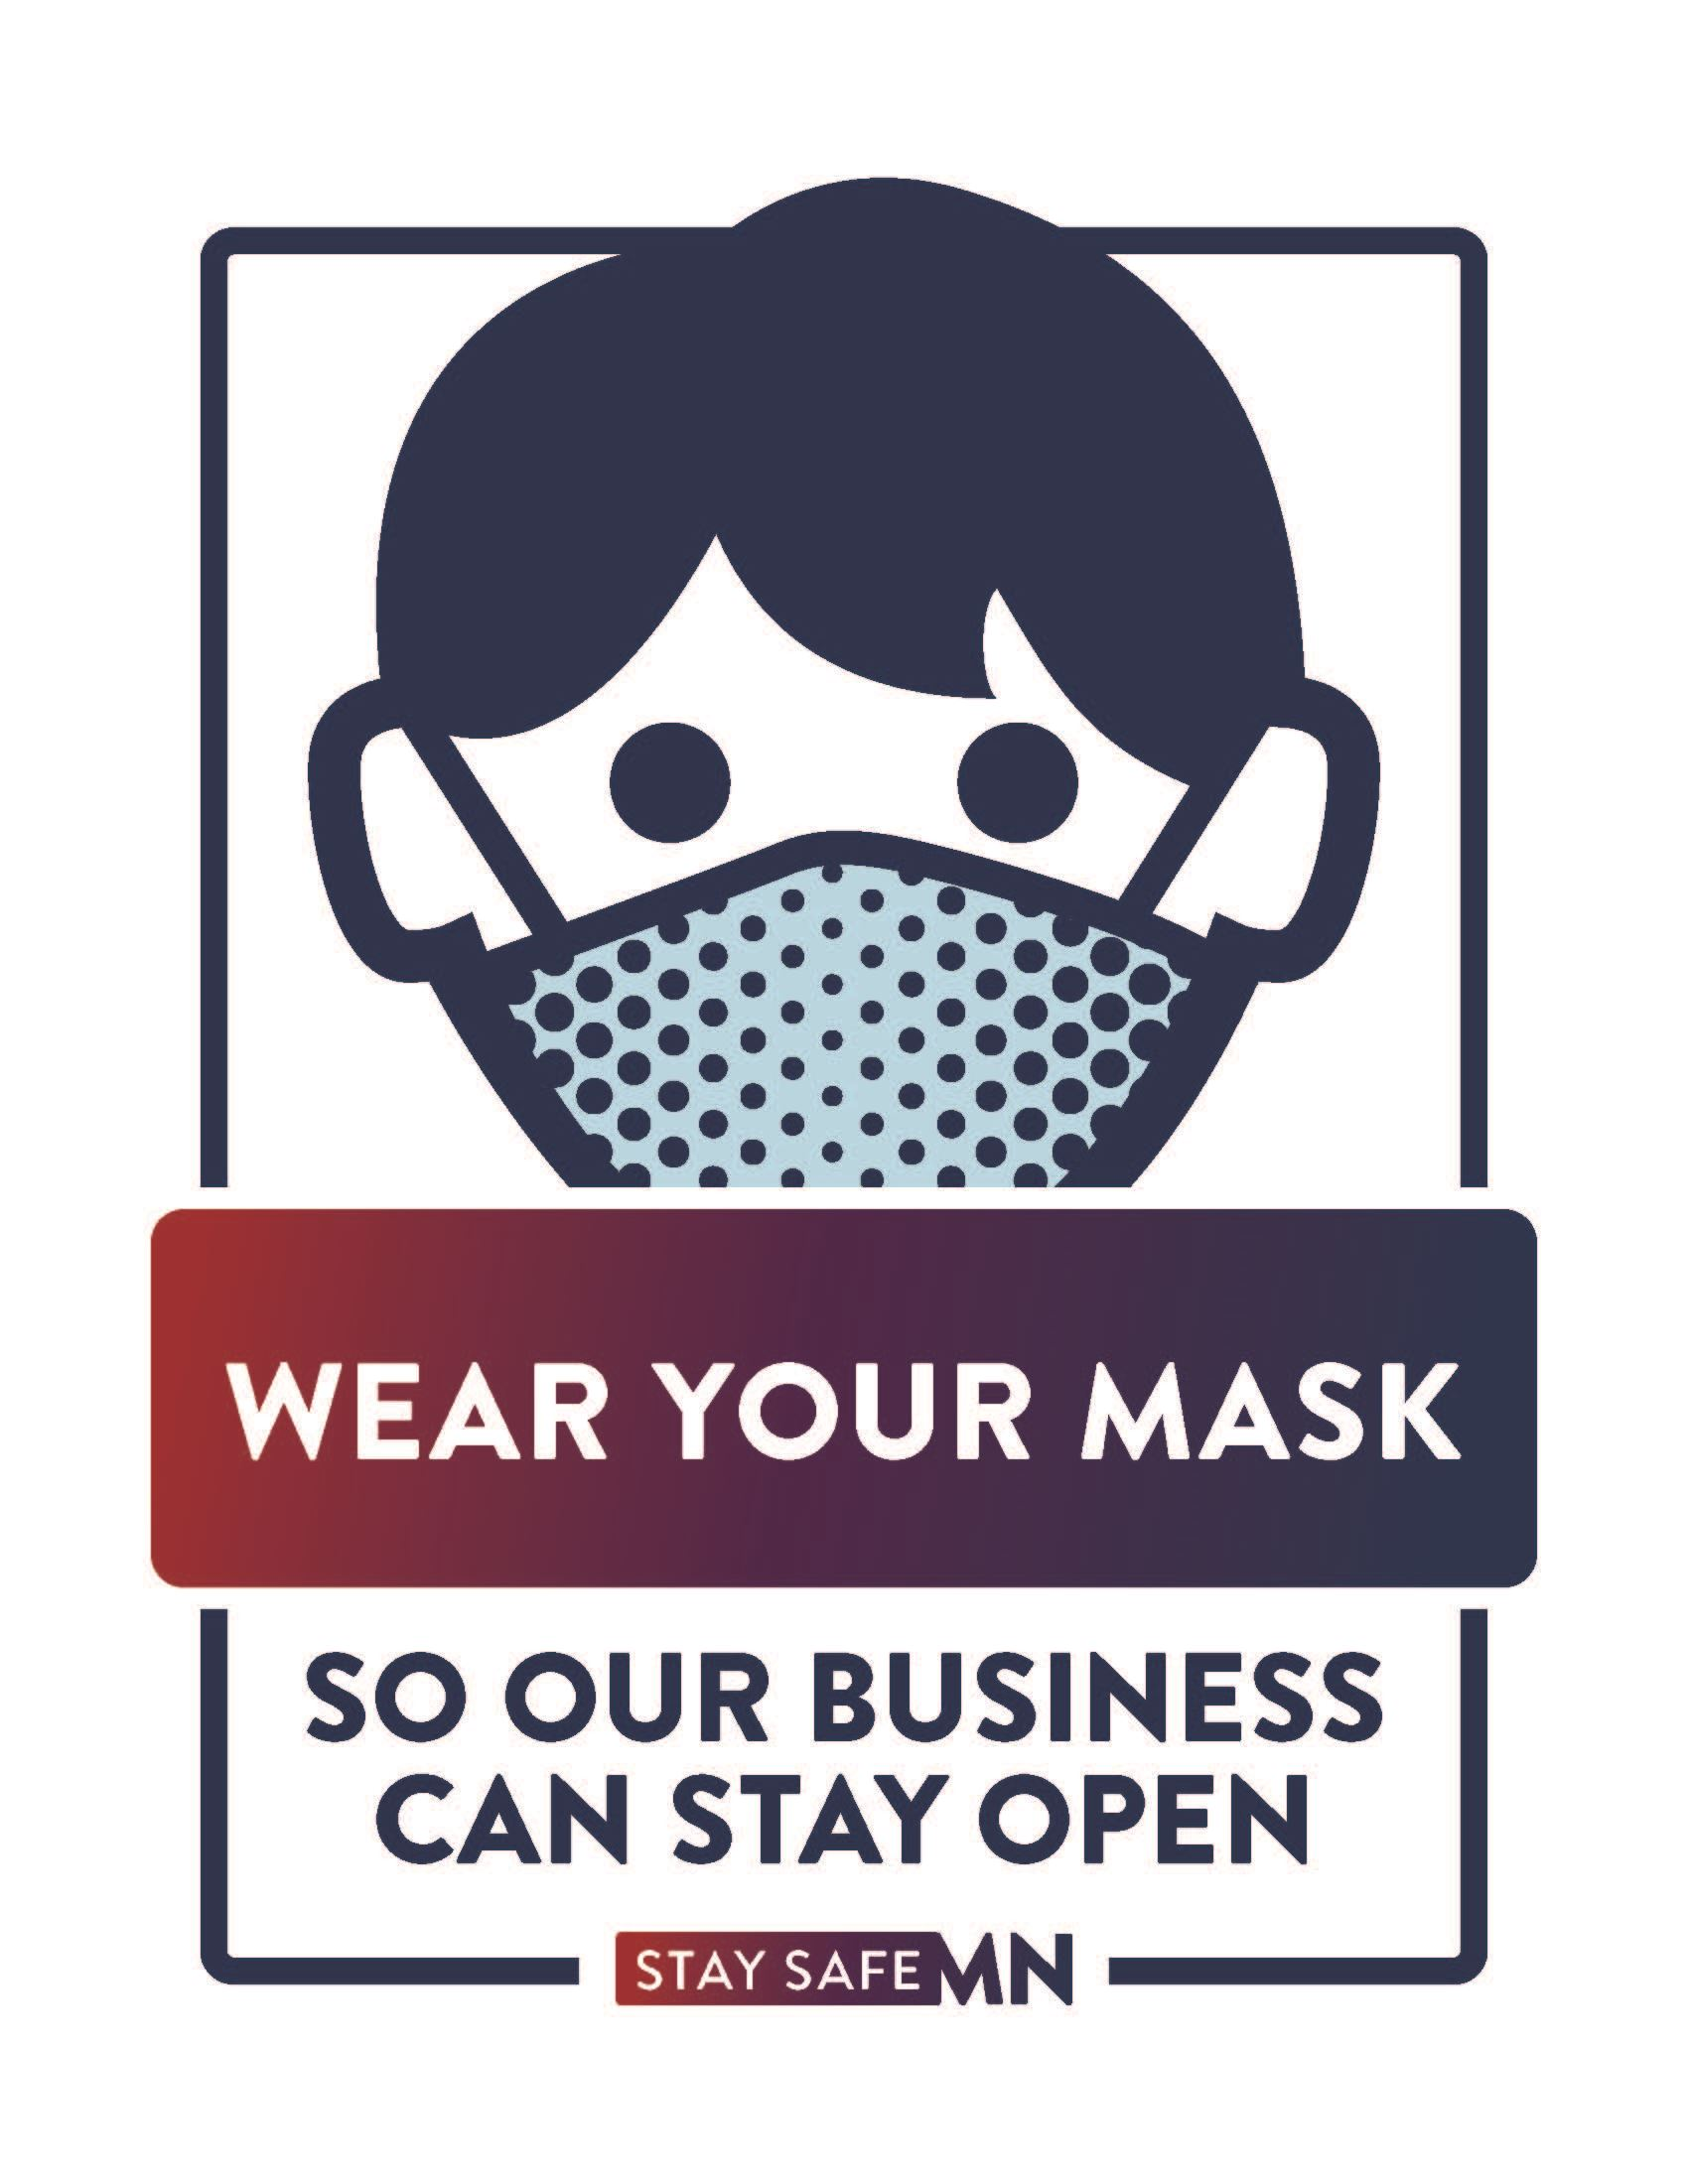 poster-wear-mask-biz-open-clr